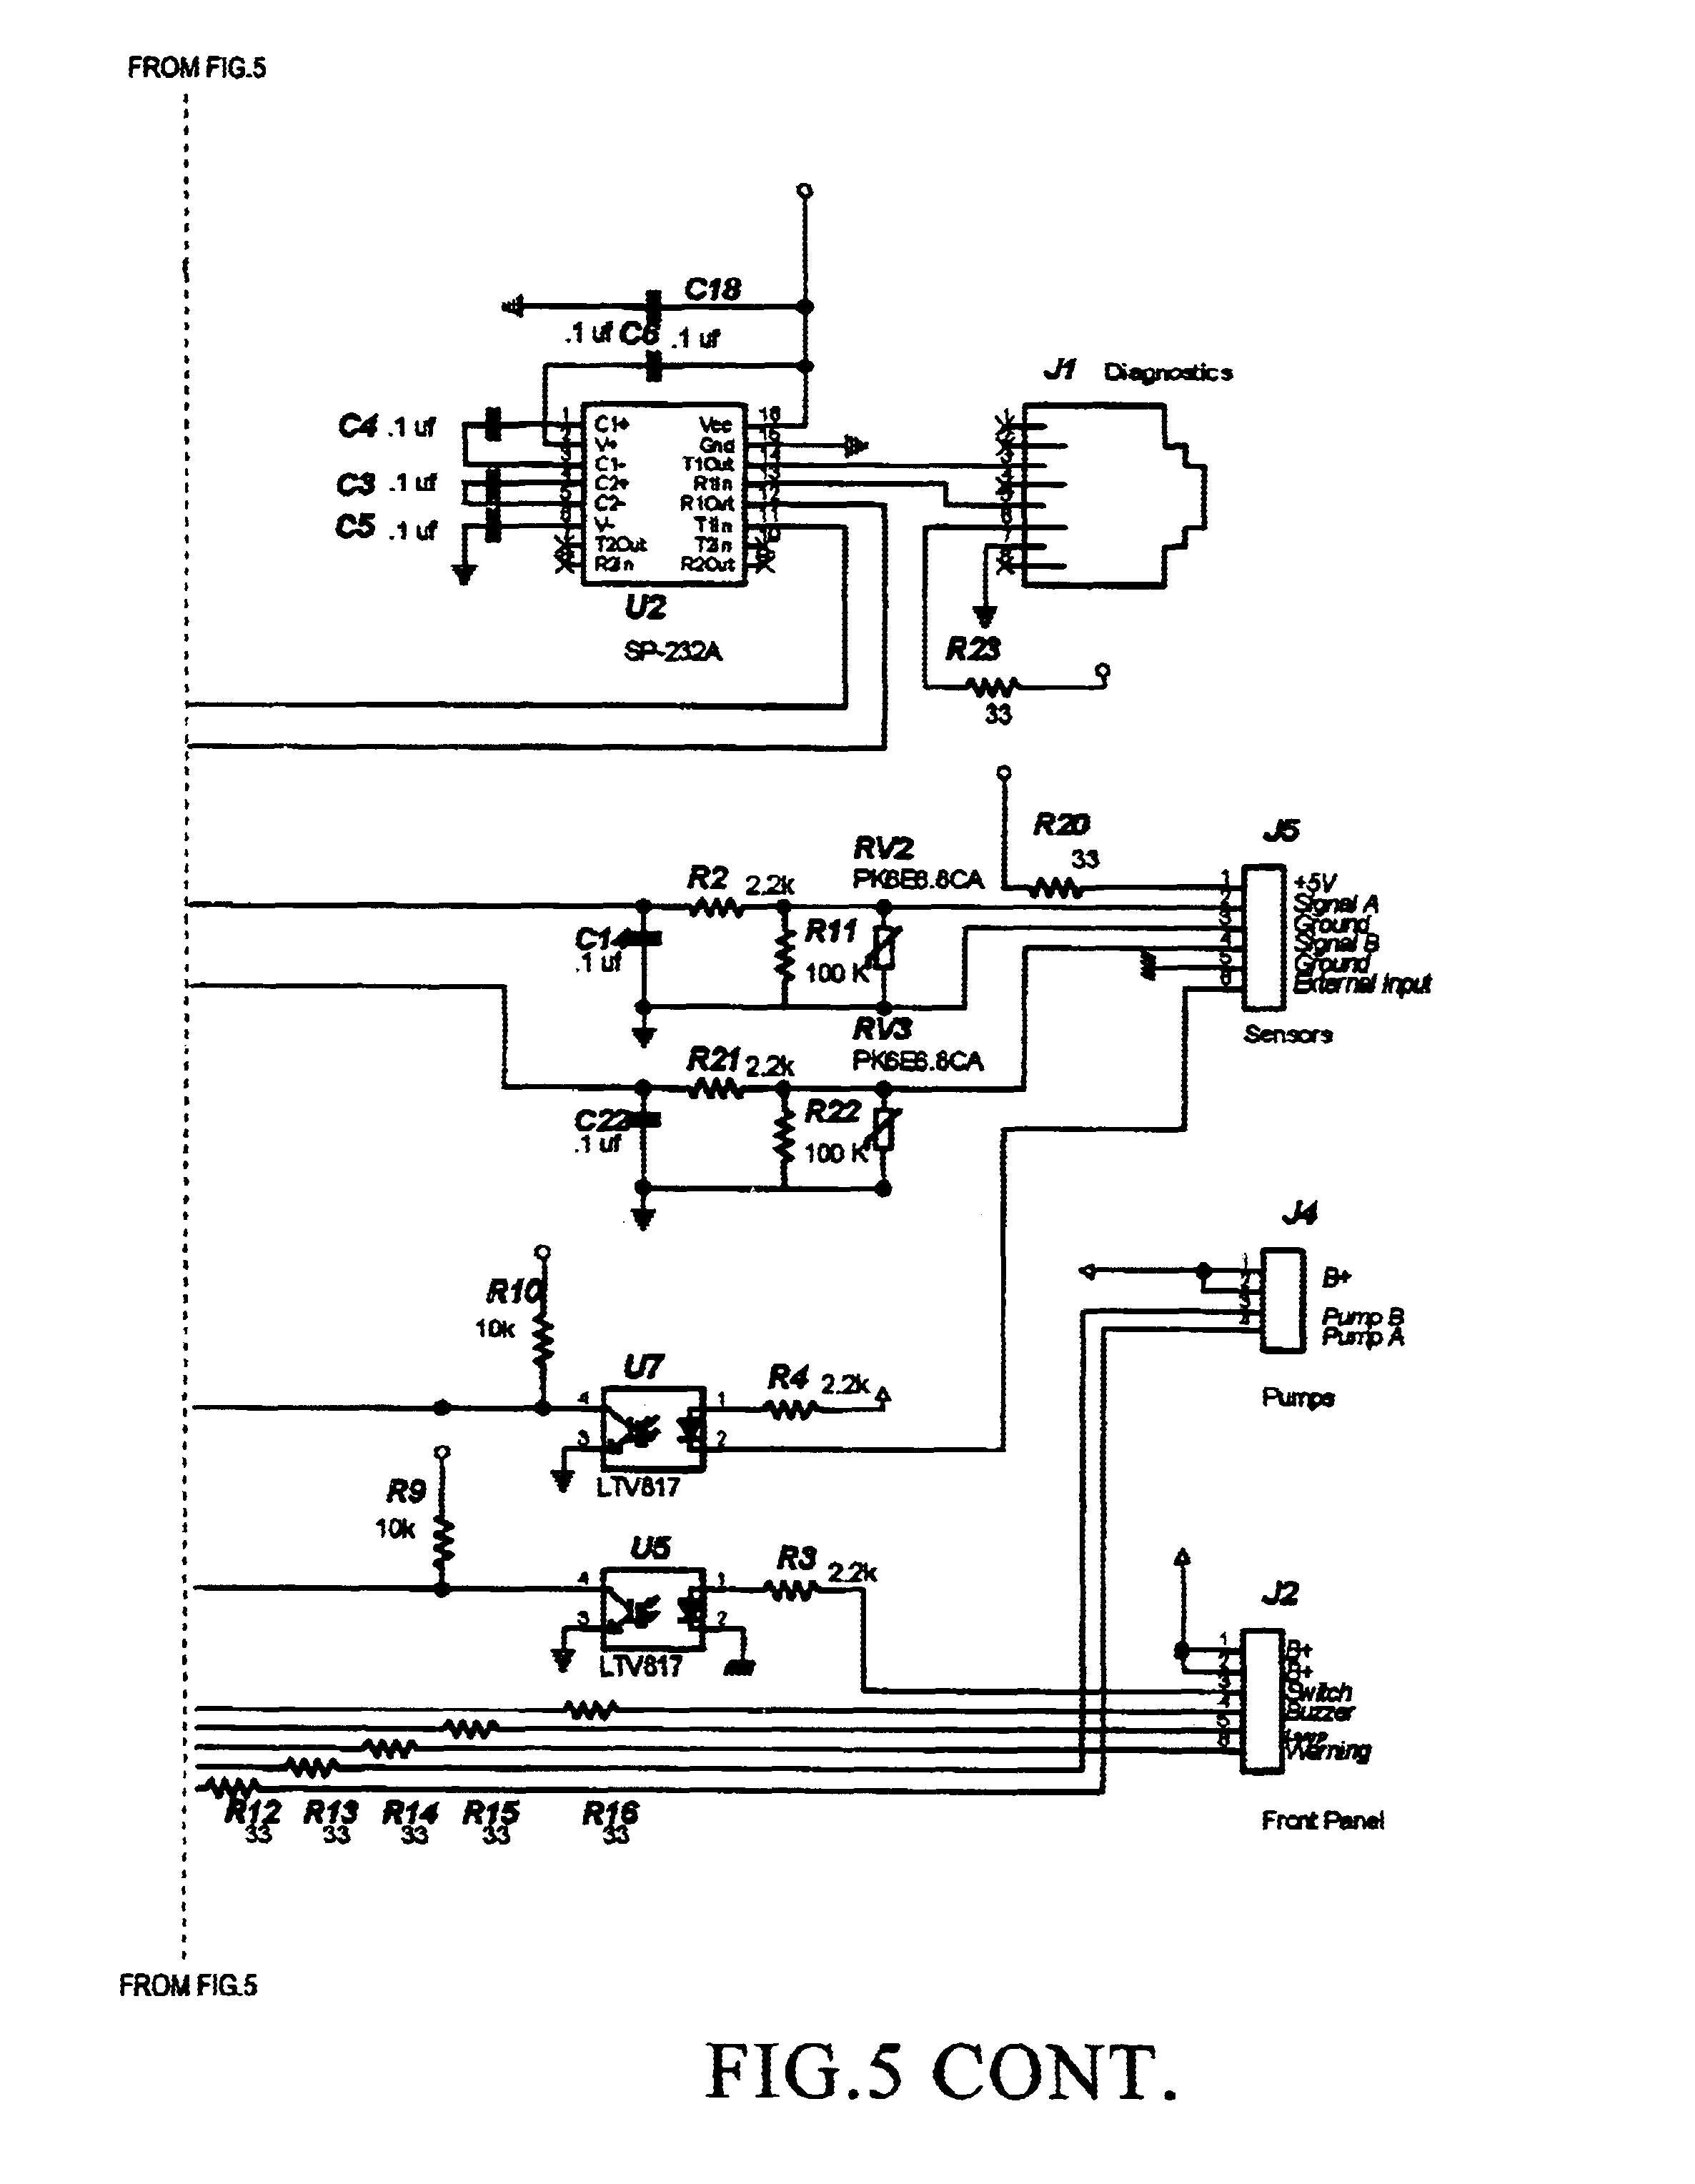 Septic Pump Wiring Diagram Septic Tank Control Wiring Diagram Get Free Image About Wiring Of Septic Pump Wiring Diagram